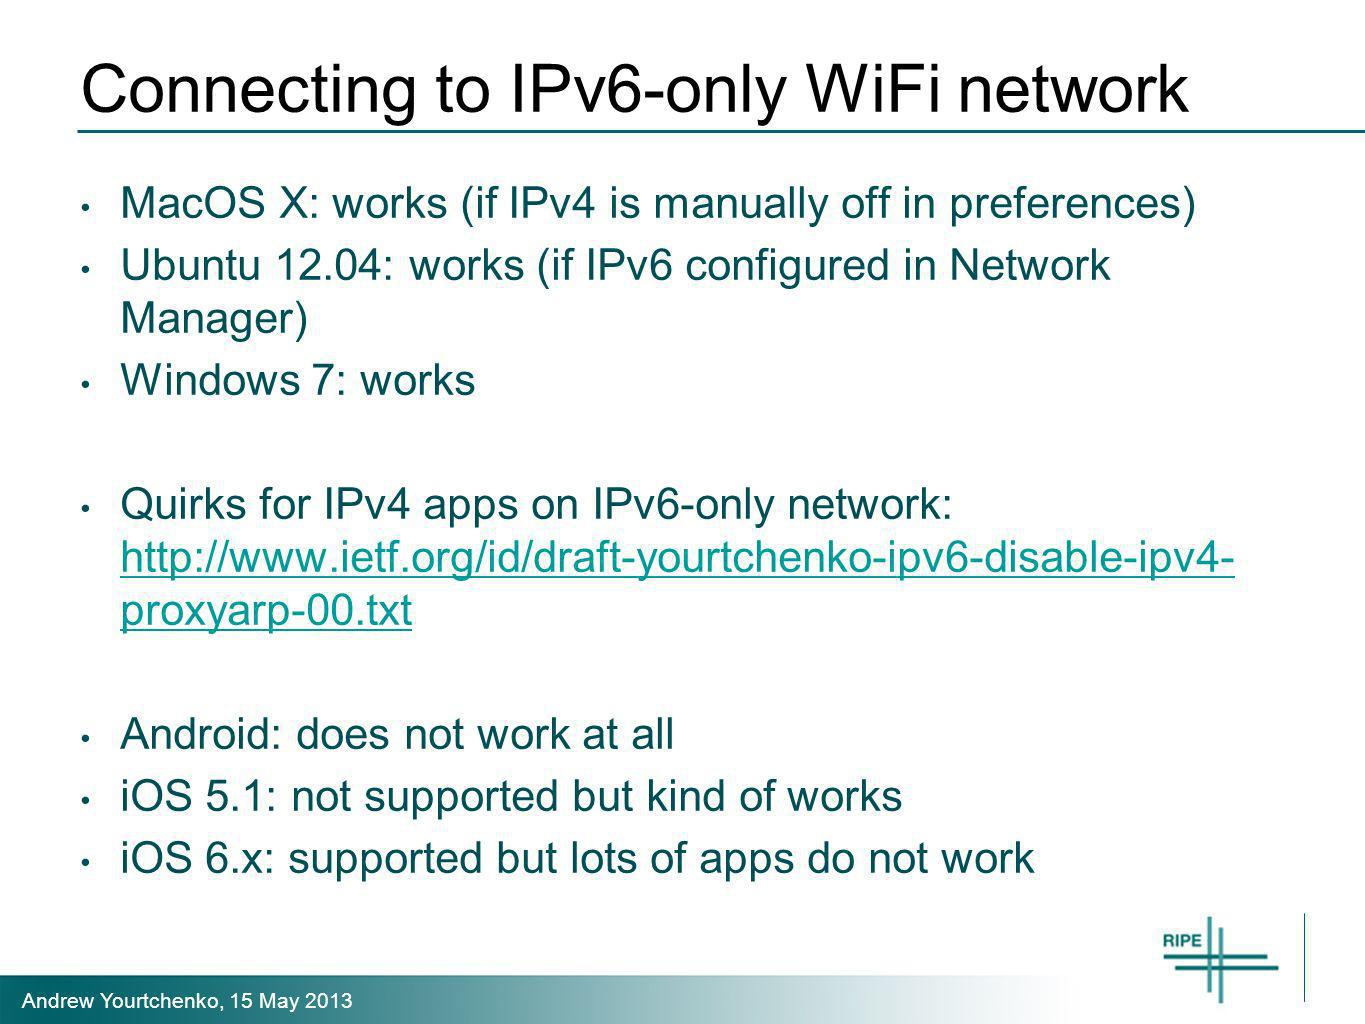 Andrew Yourtchenko, 15 May 2013 Connecting to IPv6-only WiFi network MacOS X: works (if IPv4 is manually off in preferences) Ubuntu 12.04: works (if IPv6 configured in Network Manager) Windows 7: works Quirks for IPv4 apps on IPv6-only network: http://www.ietf.org/id/draft-yourtchenko-ipv6-disable-ipv4- proxyarp-00.txt http://www.ietf.org/id/draft-yourtchenko-ipv6-disable-ipv4- proxyarp-00.txt Android: does not work at all iOS 5.1: not supported but kind of works iOS 6.x: supported but lots of apps do not work